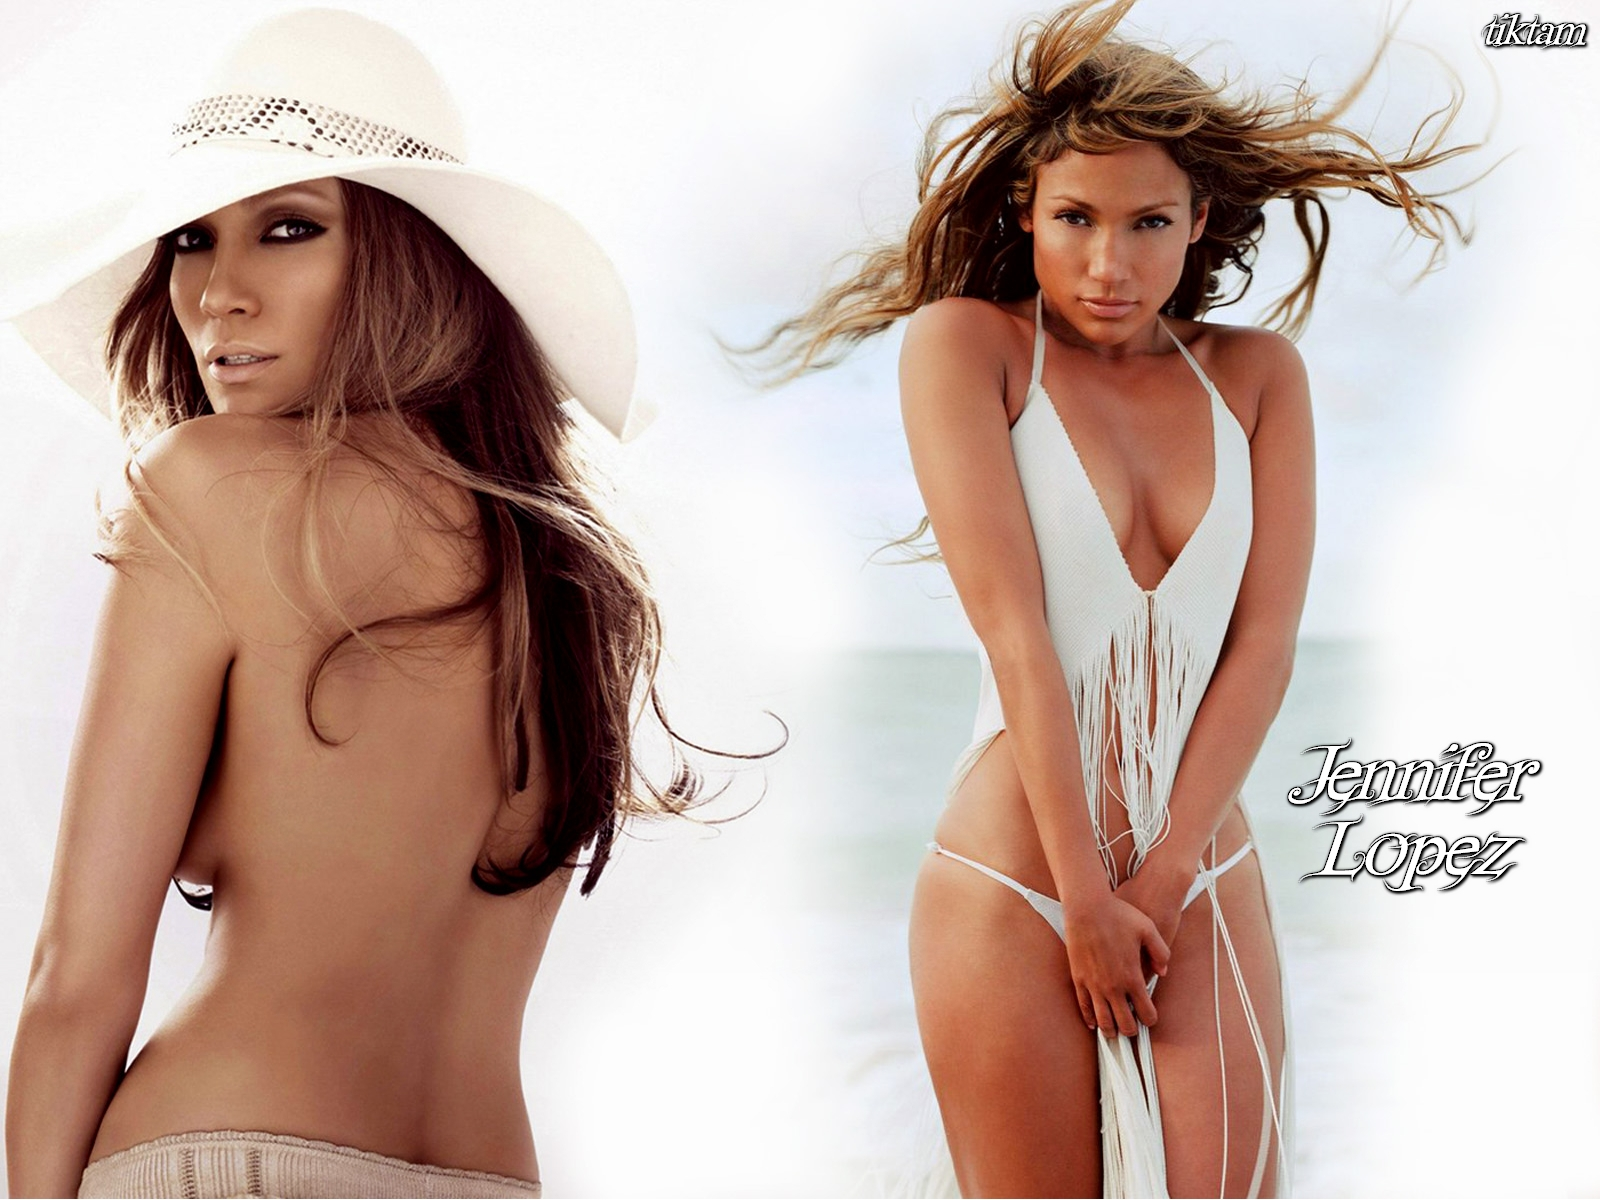 Jennifer Lopez wallpaper 2011